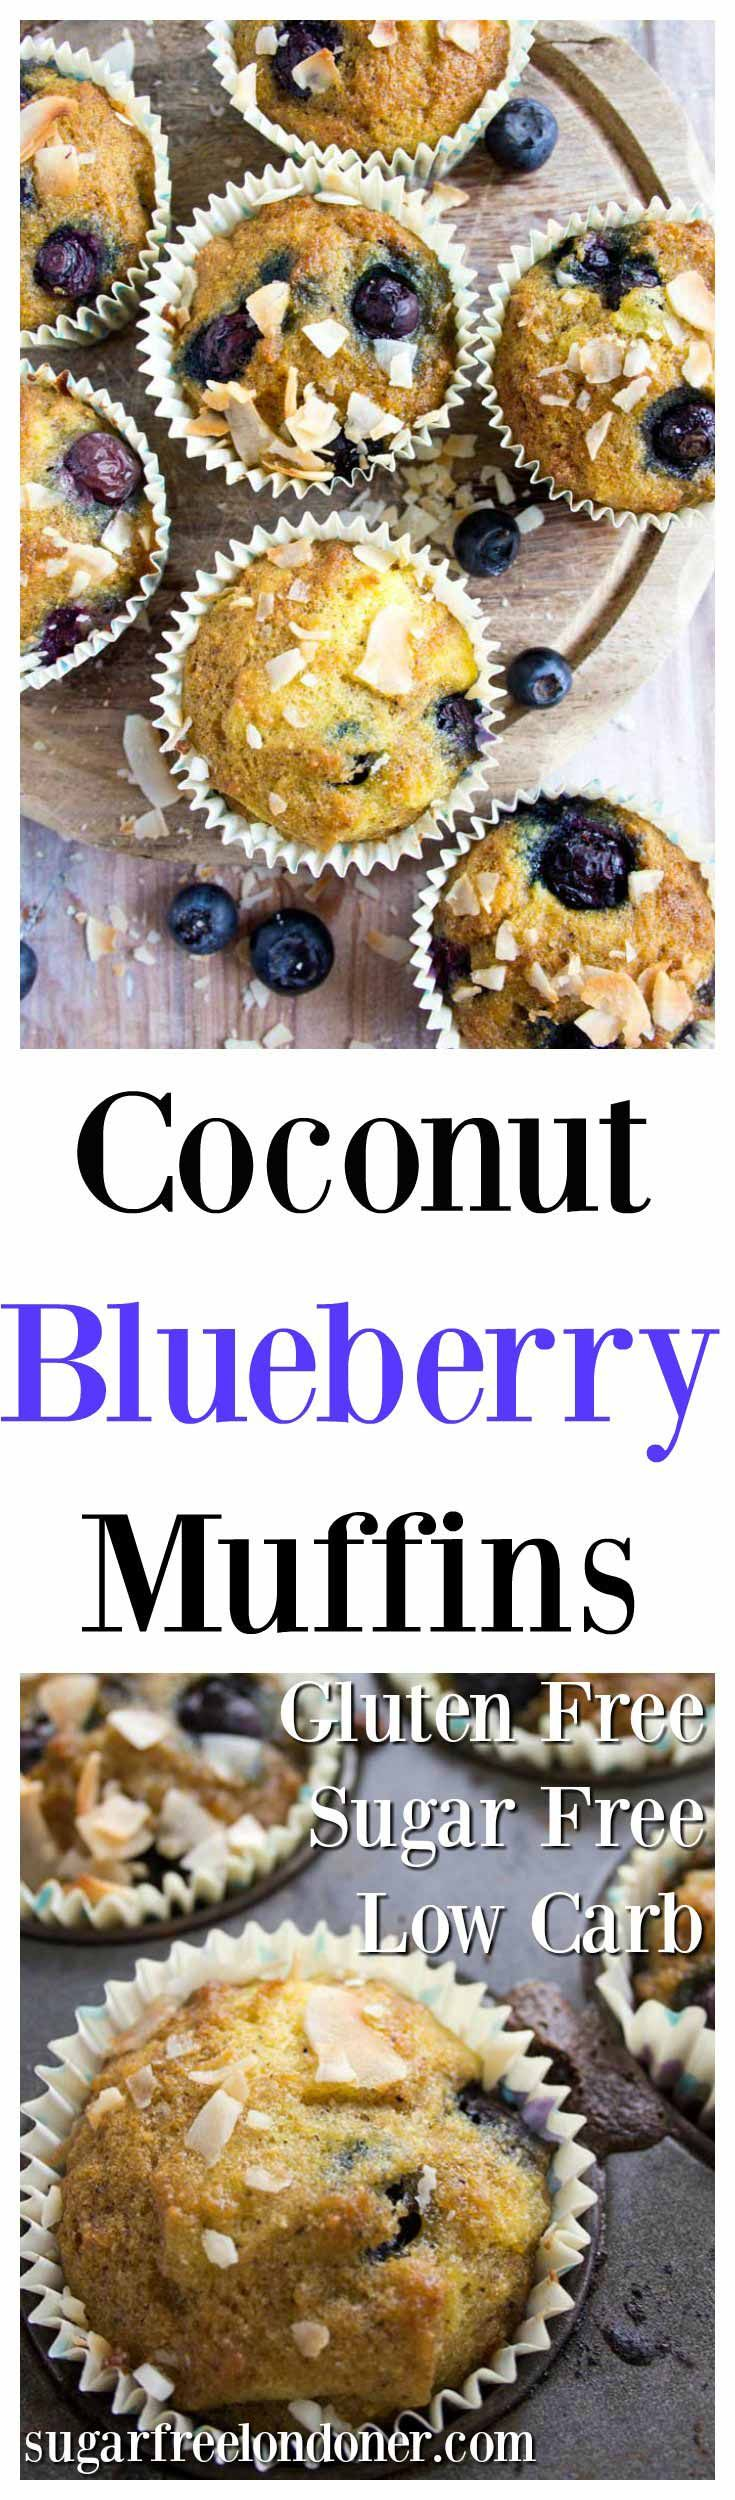 Light and golden coconut blueberry muffins - perfectly moist with fruity blueberry bursts. Enjoy as an on-the-go breakfast or as a satisfying snack. Gluten free and low carb.